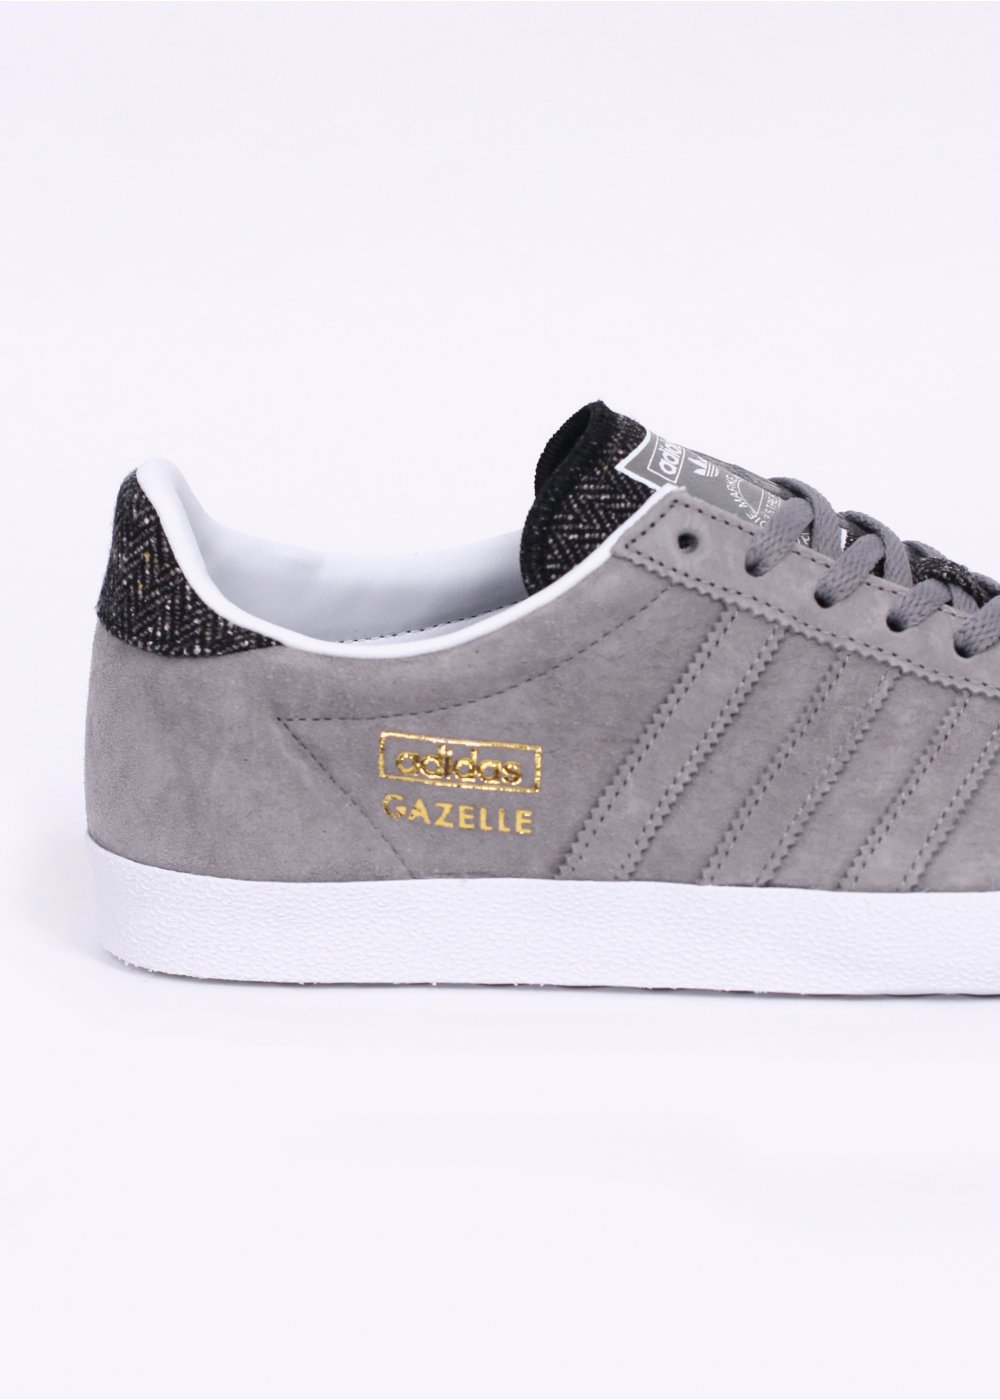 Bolos Sudamerica solar  mens adidas grey gazelle og trainers > Clearance shop